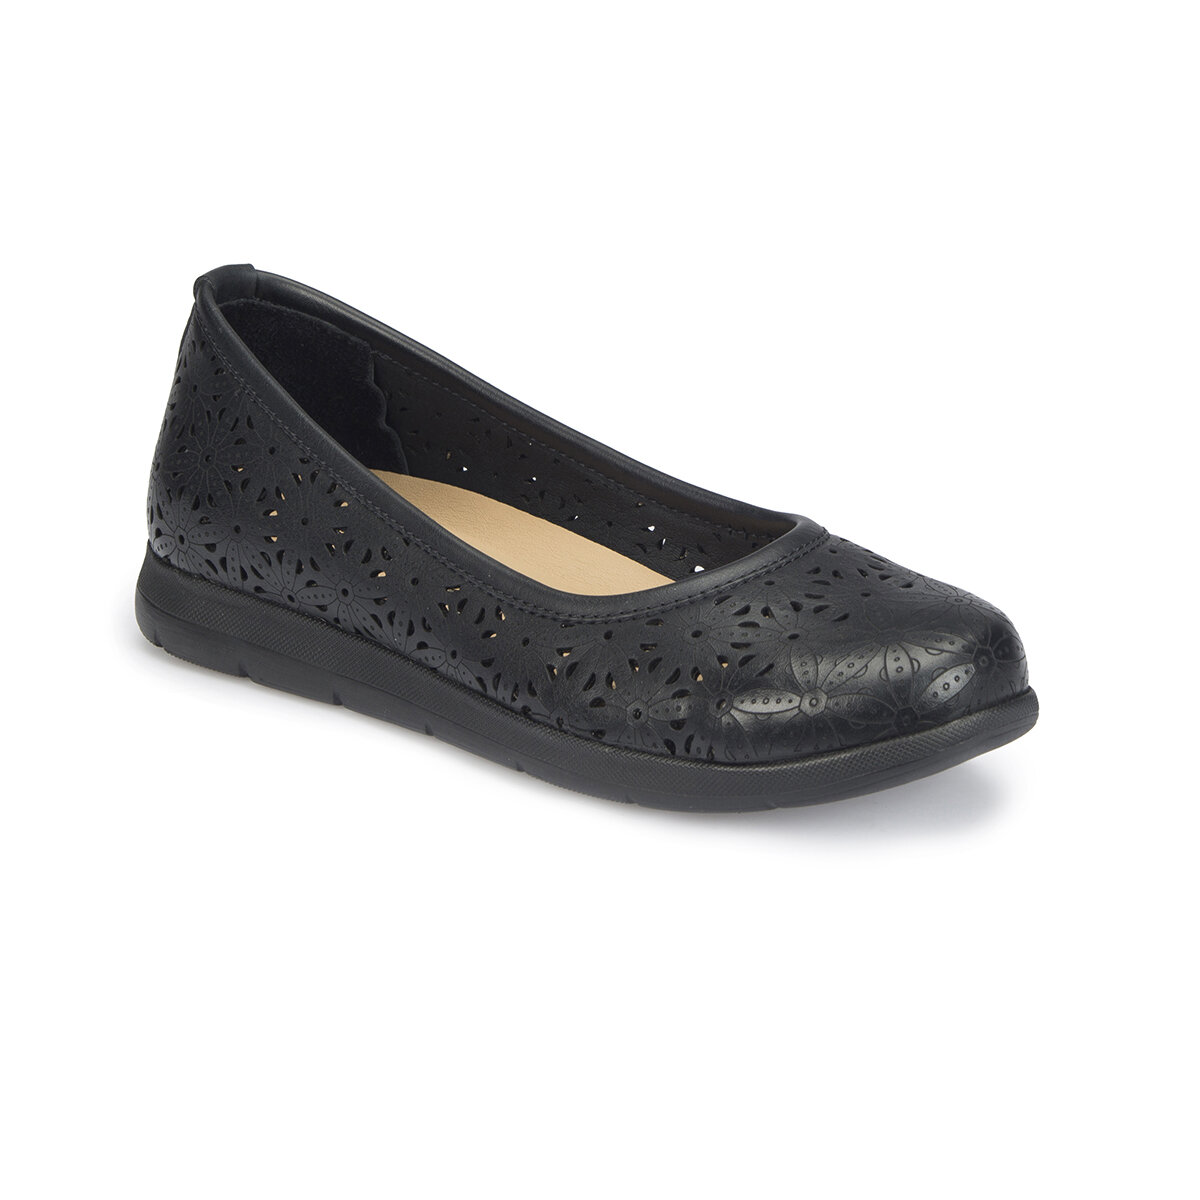 FLO 81.111281.Z Black Women Basic Comfort Polaris